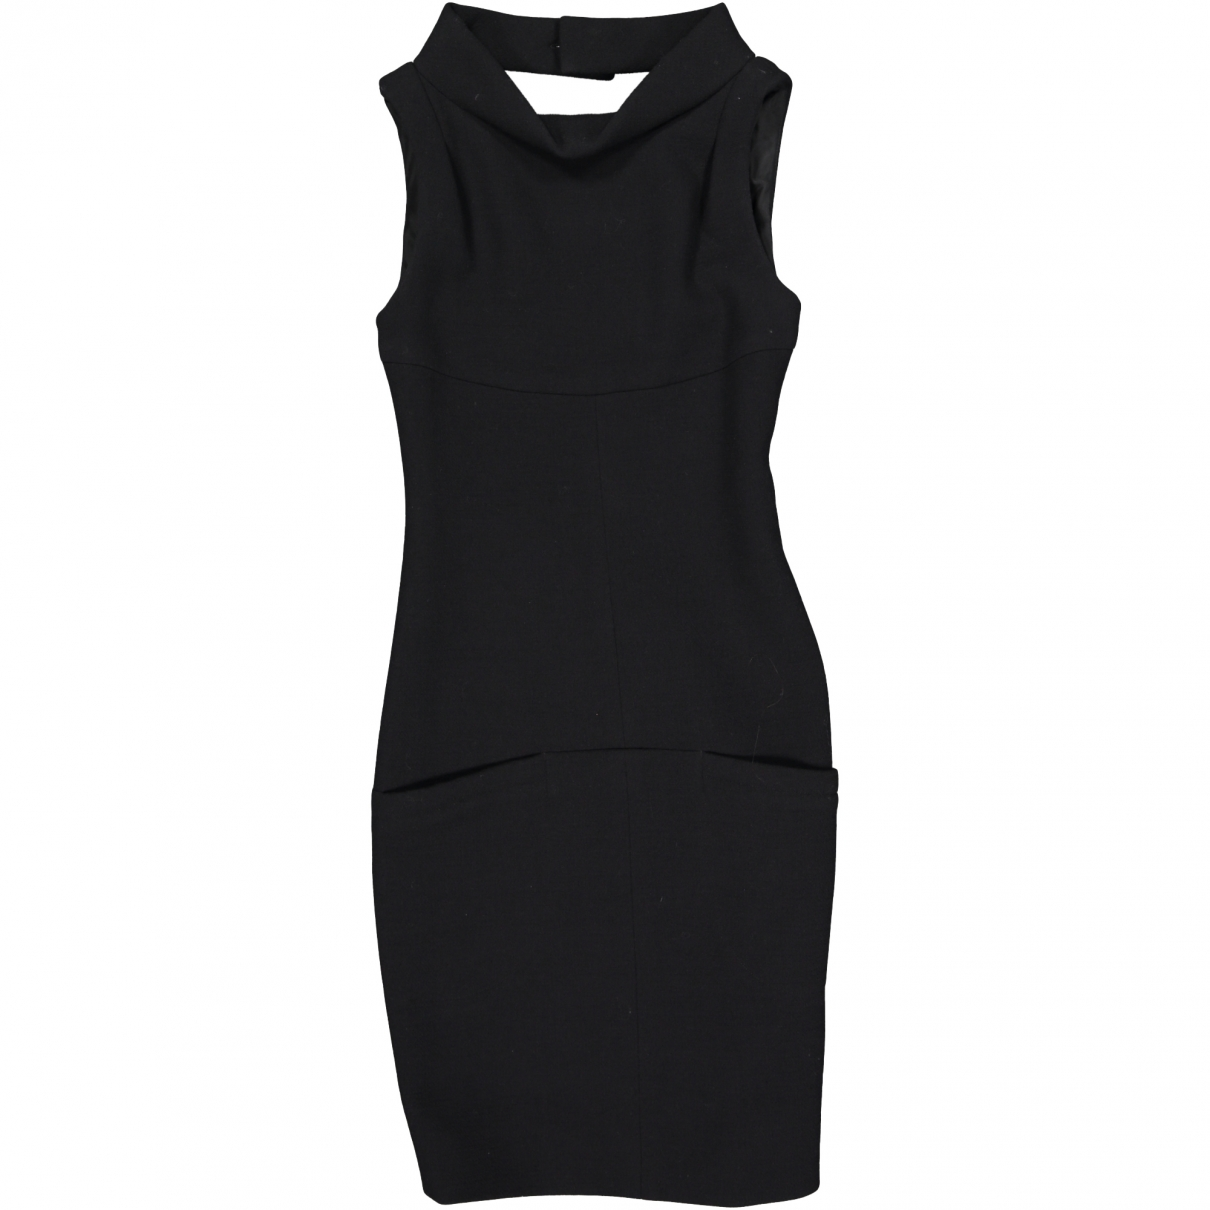 Chanel \N Black Wool dress for Women 34 FR